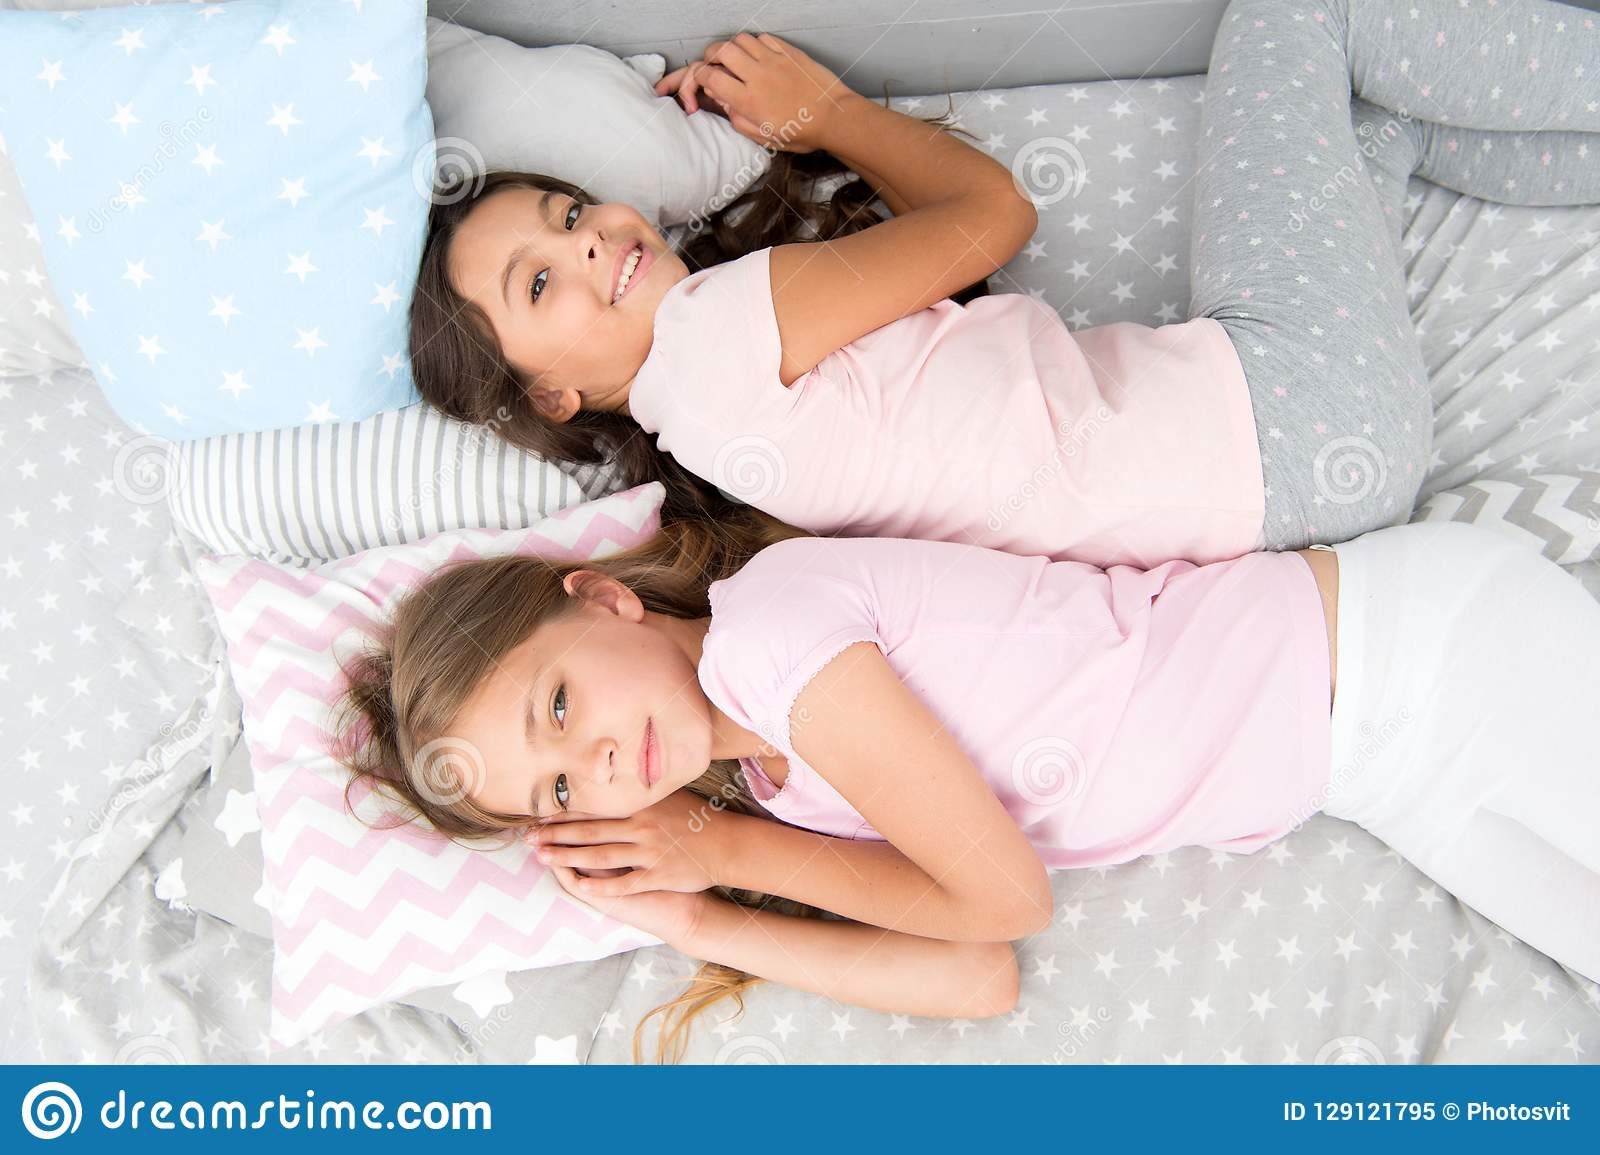 girls just want to have fun invite friend for sleepover best